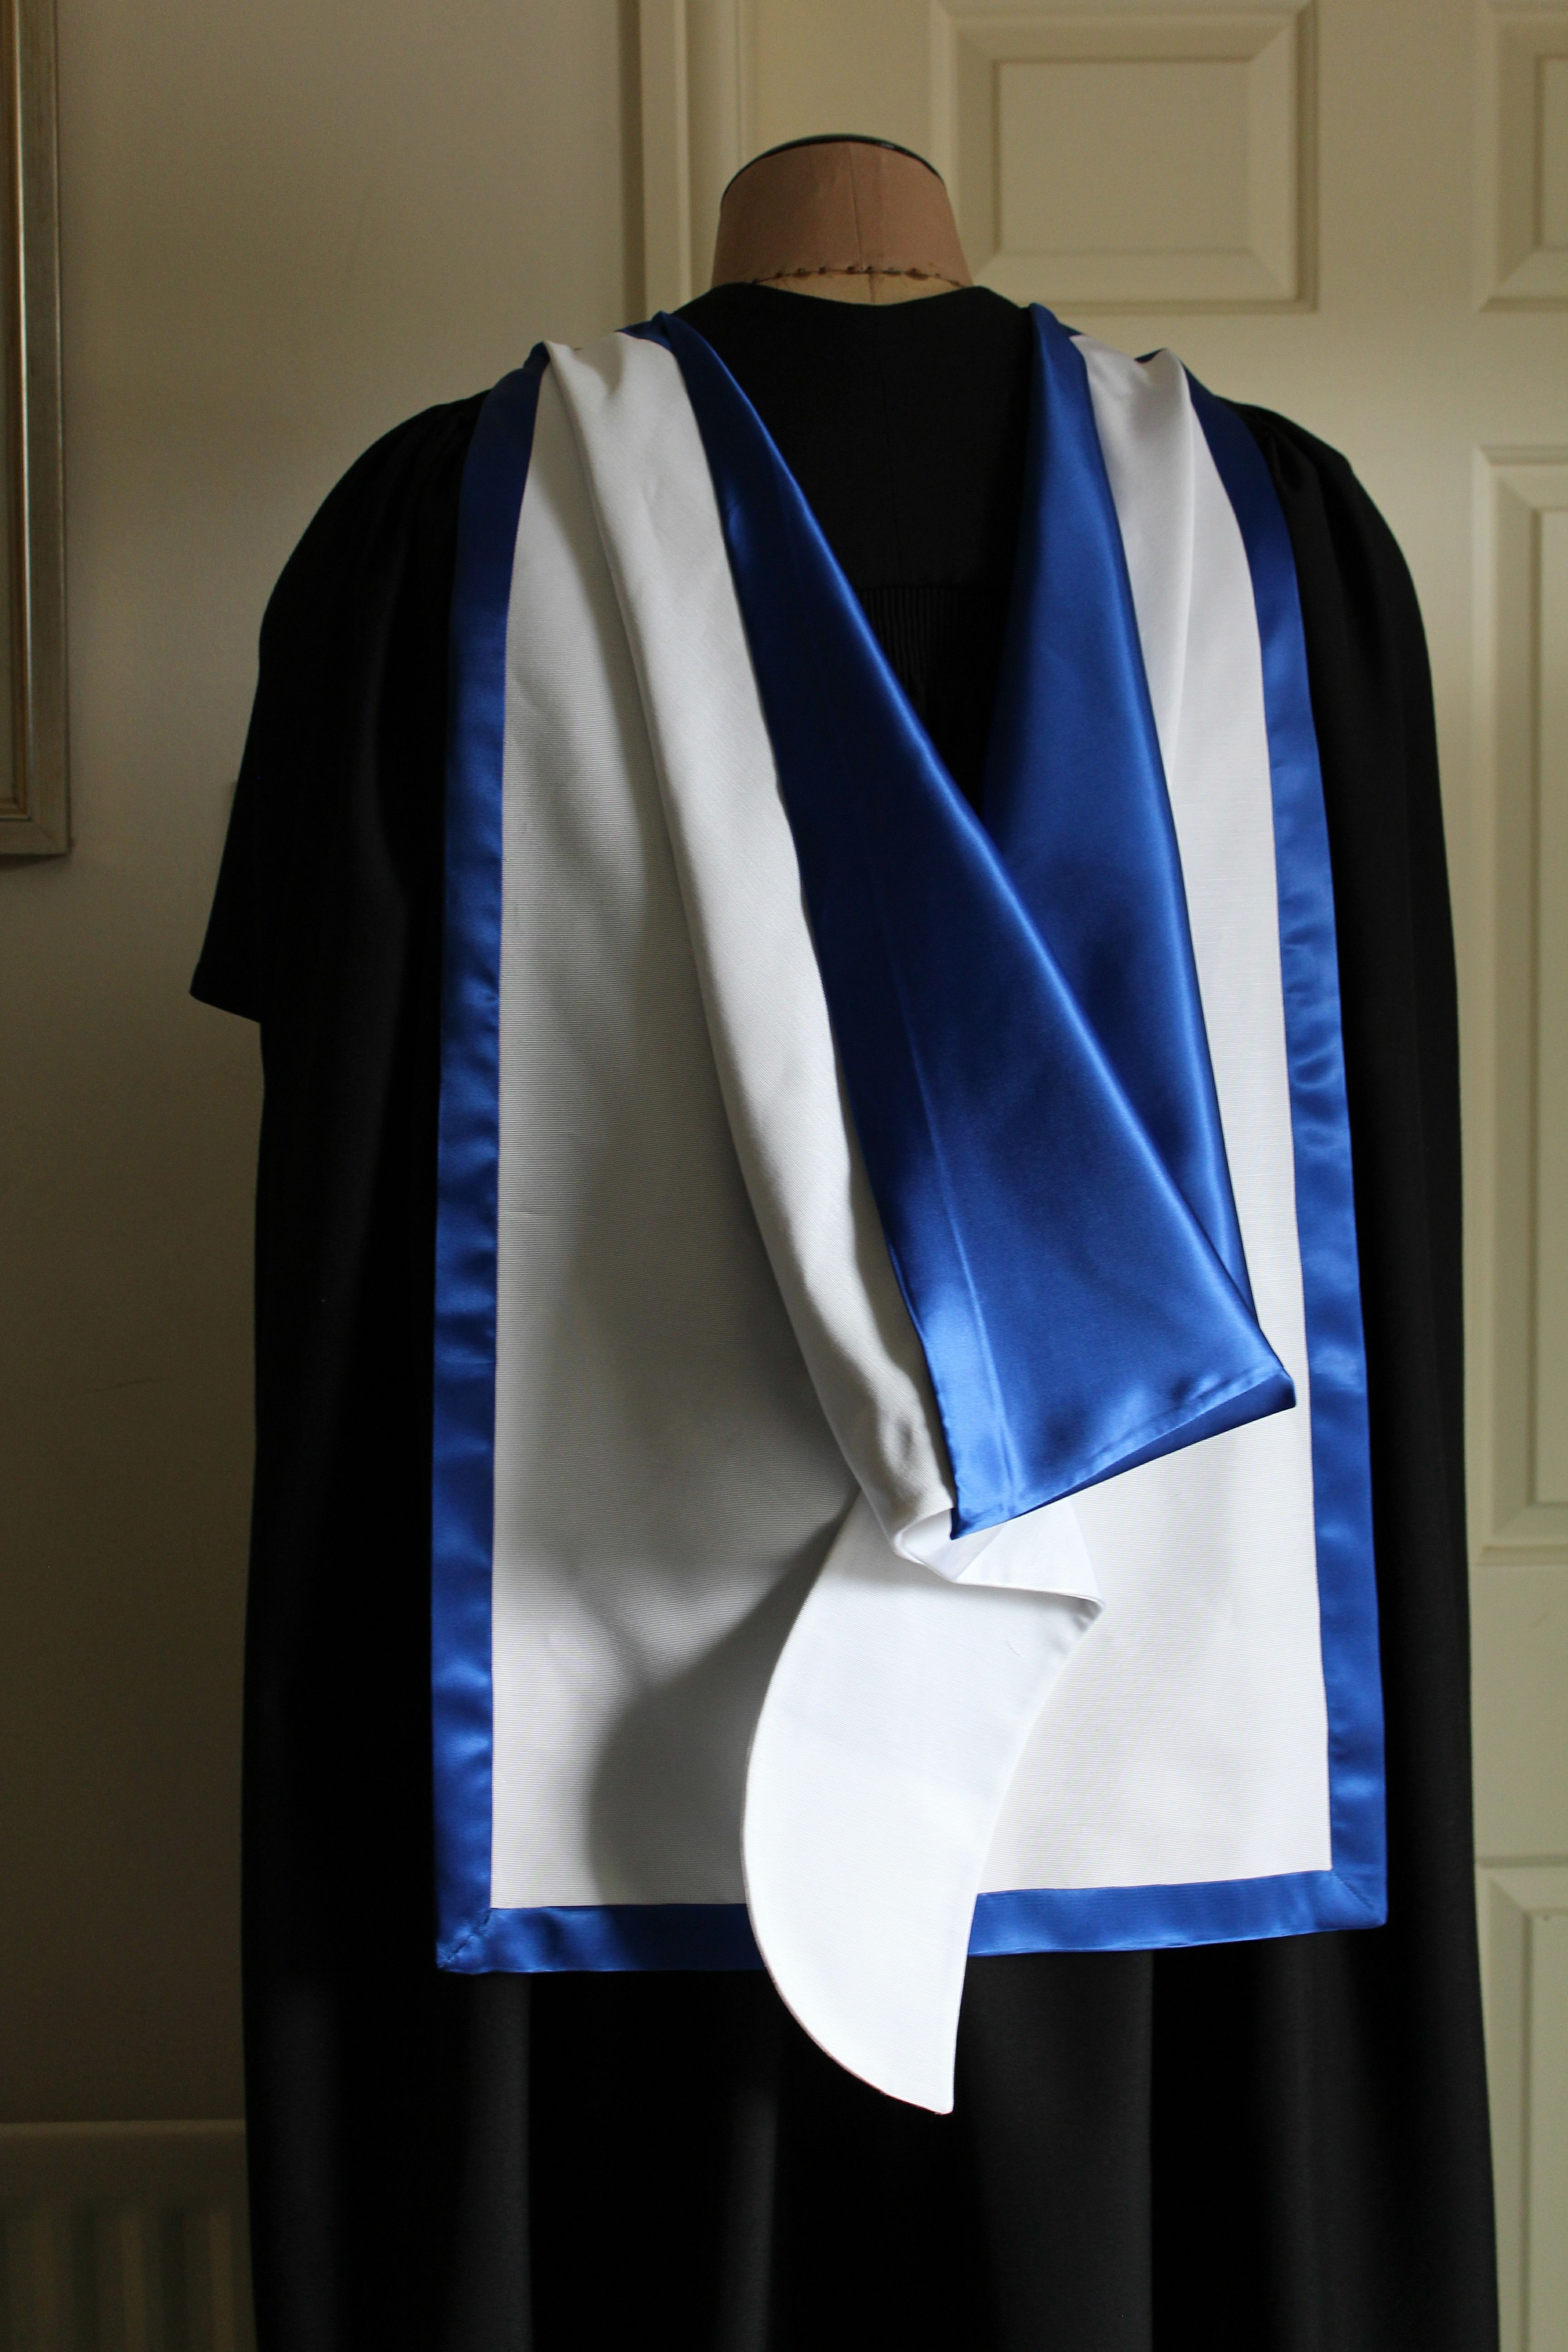 Robes of Distinction using our 531-2940 for Dublin Trinity College ...